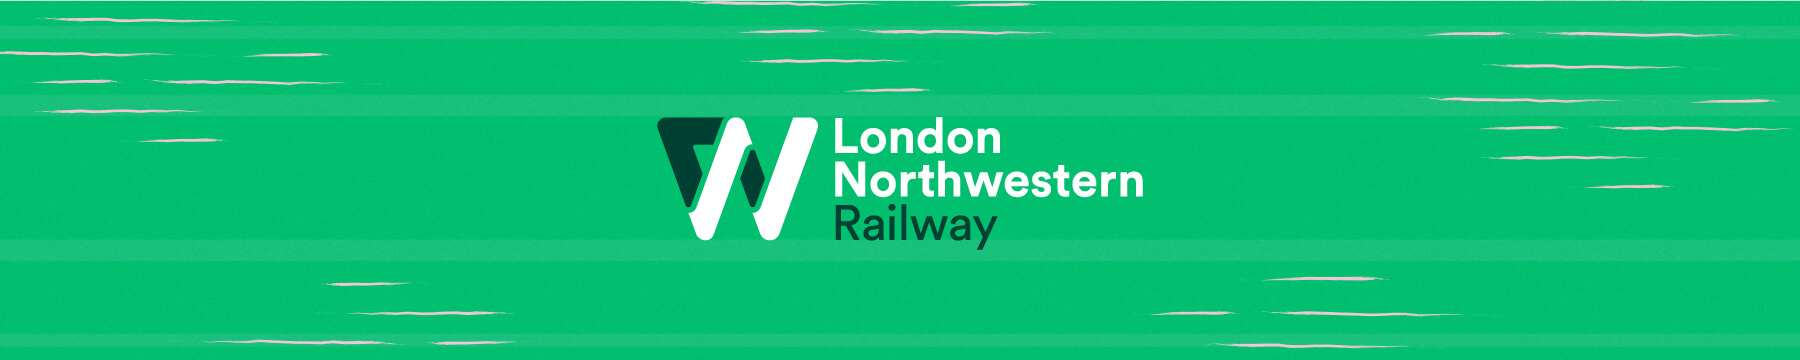 london northwestern railway logo banner